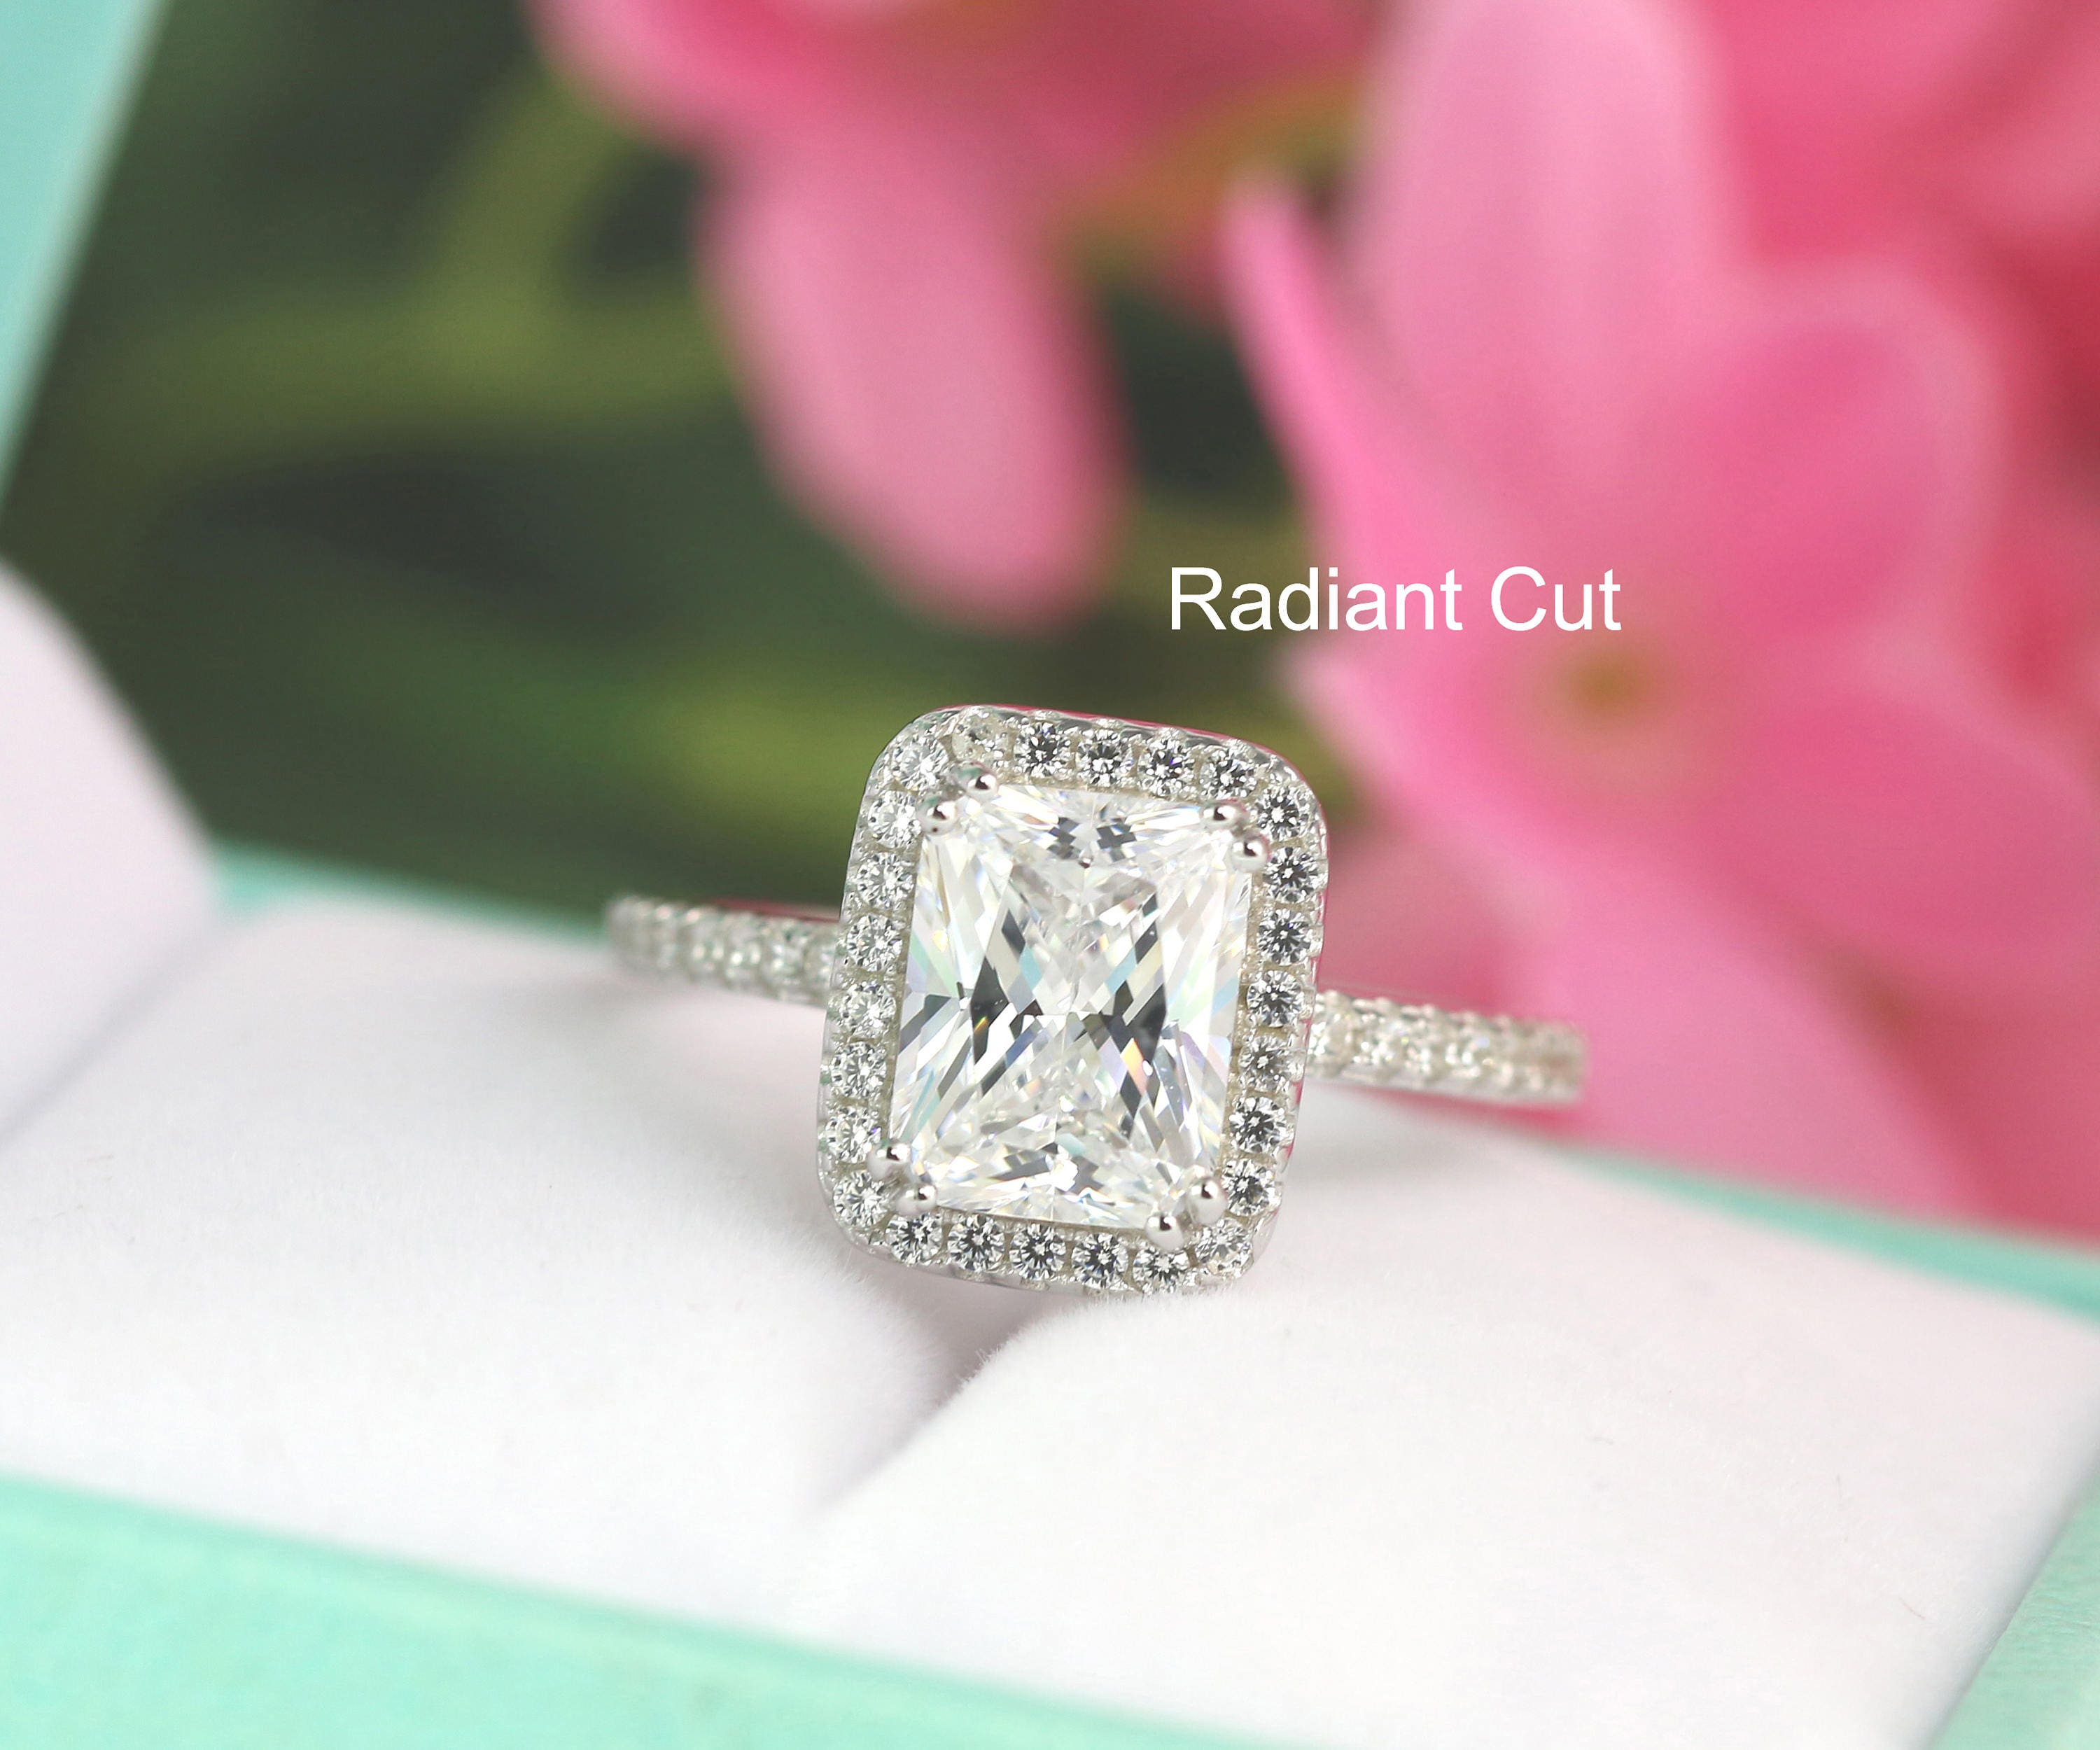 rings diamond yellow ring engagement com double radiant jianglu fancy dhgate halo product cut from